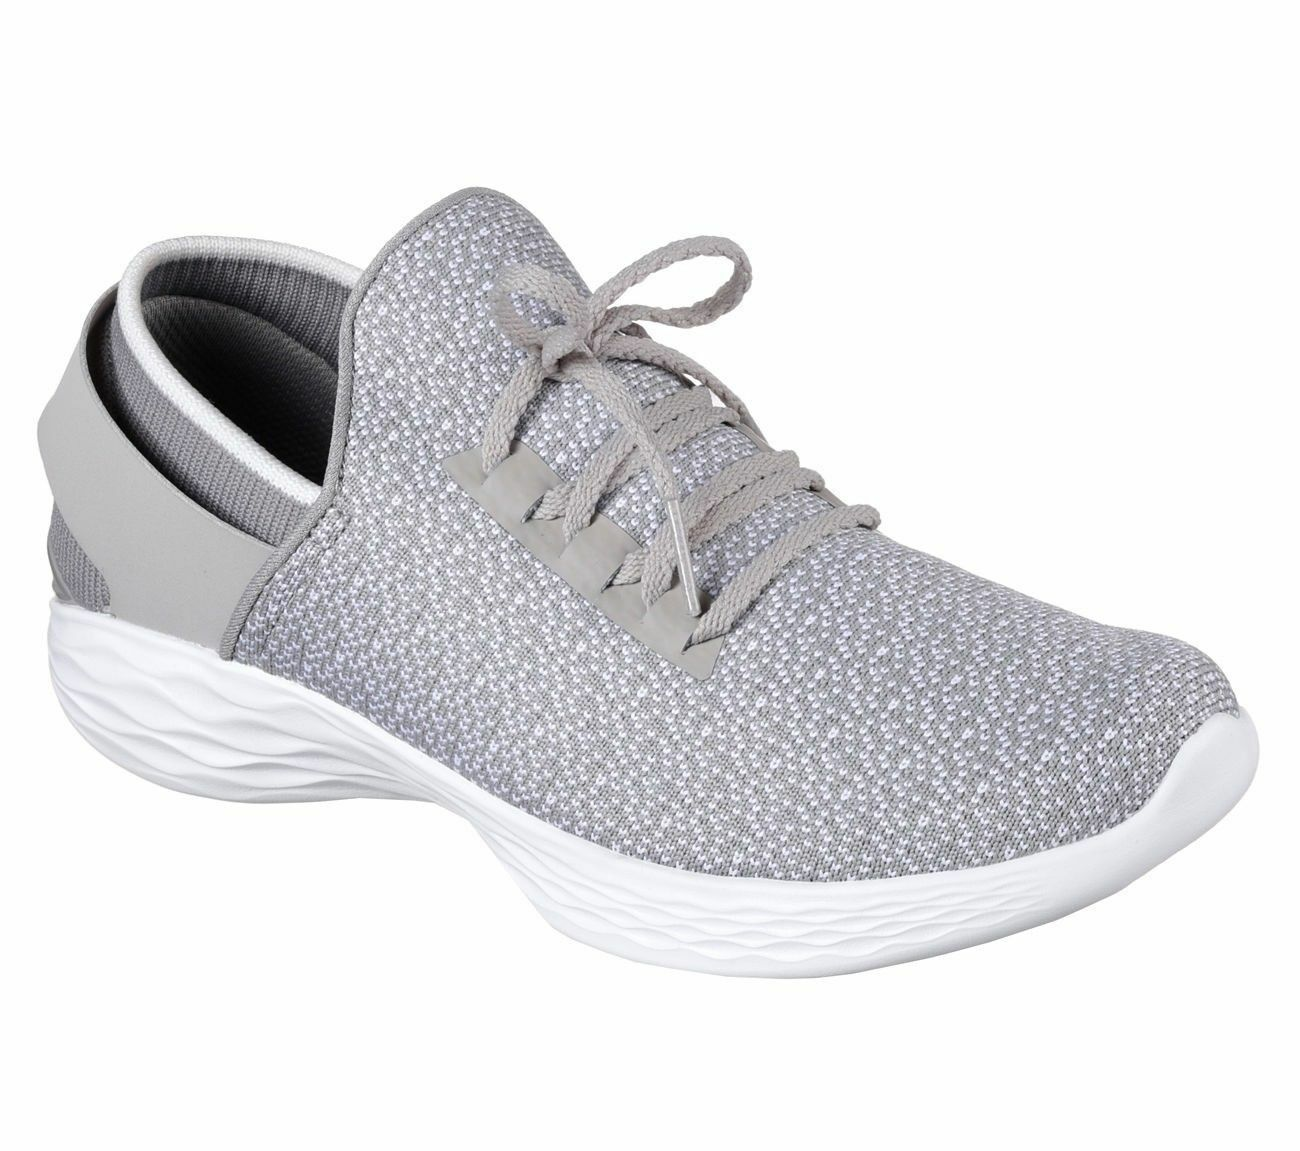 NEW Women's Gray Skechers You Inspire Go Walk 4 Slip On Shoes Size 7.5 Free Ship